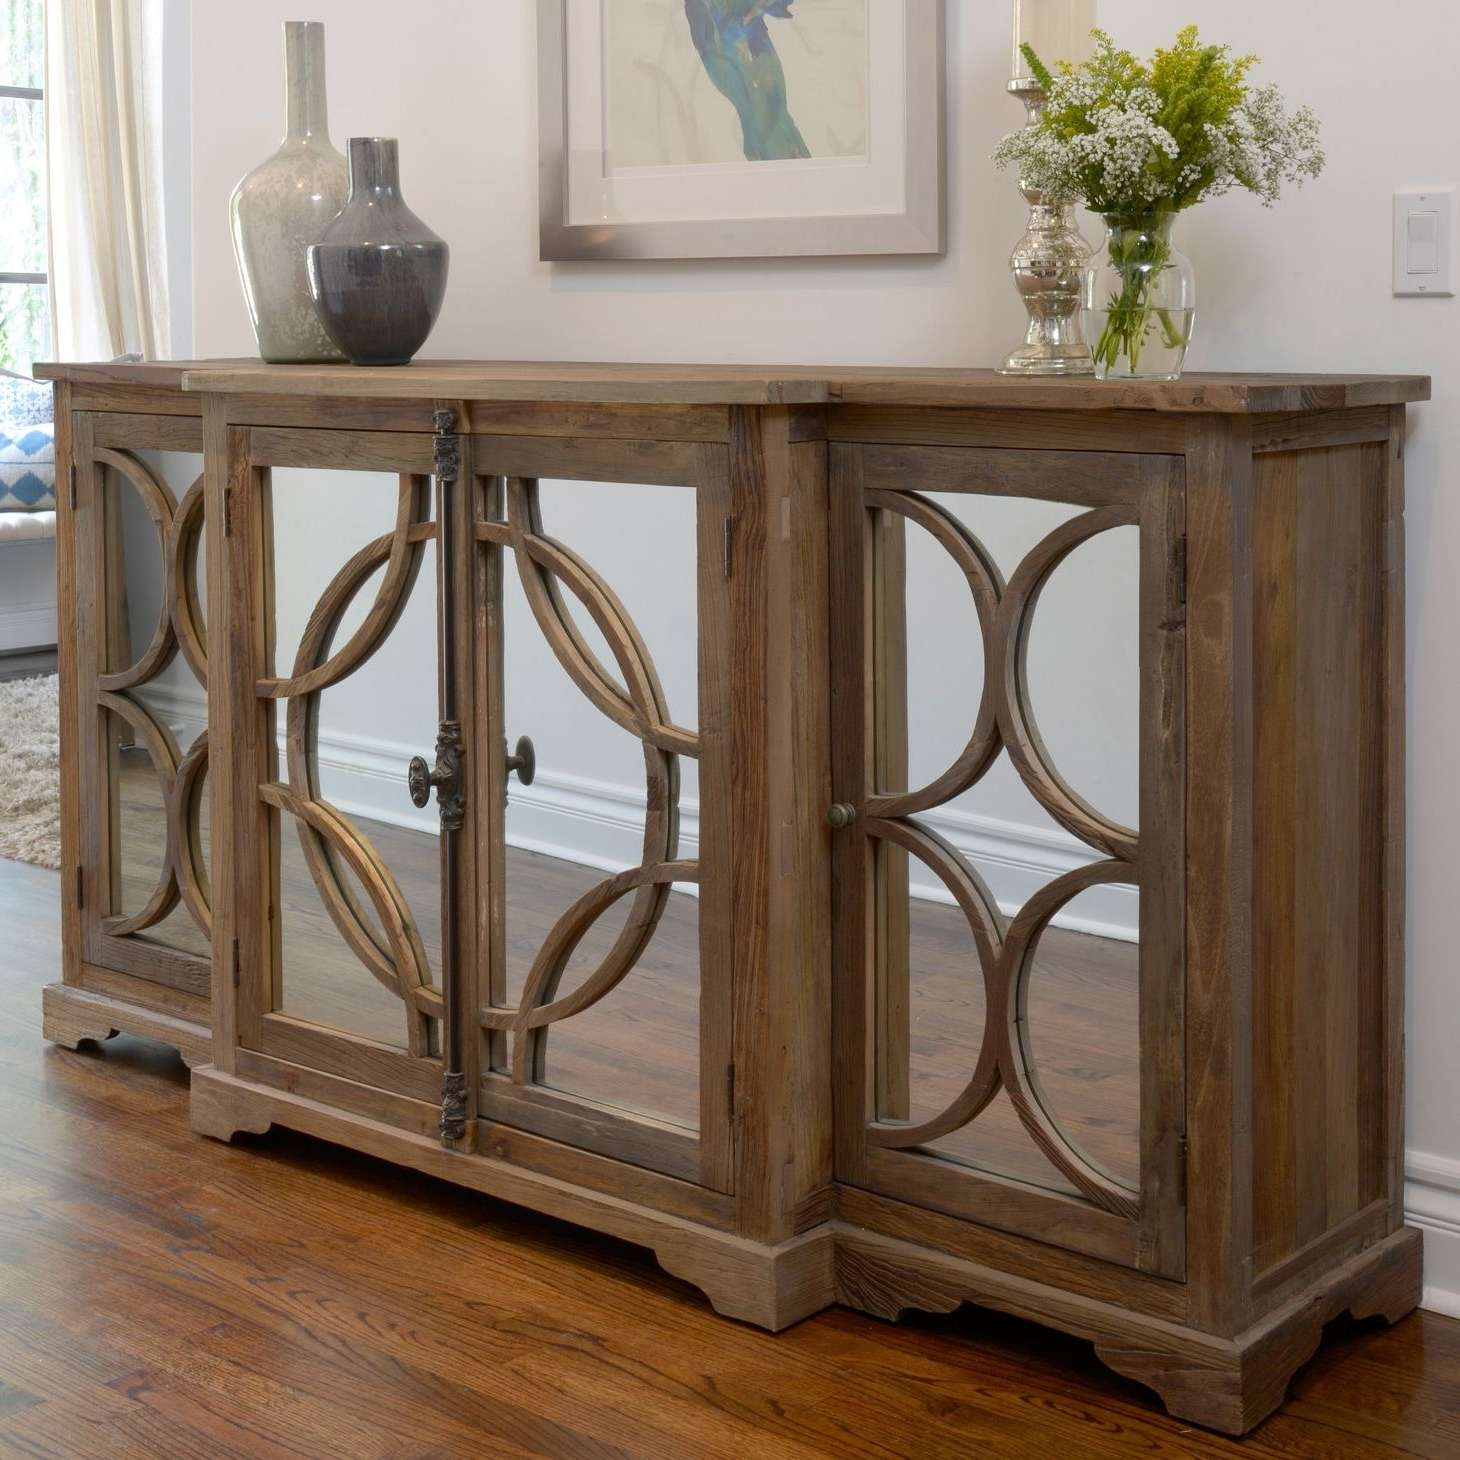 Contemporary Sideboards And Buffets Best Of And Add This Wood With Buffets Sideboards (View 6 of 20)